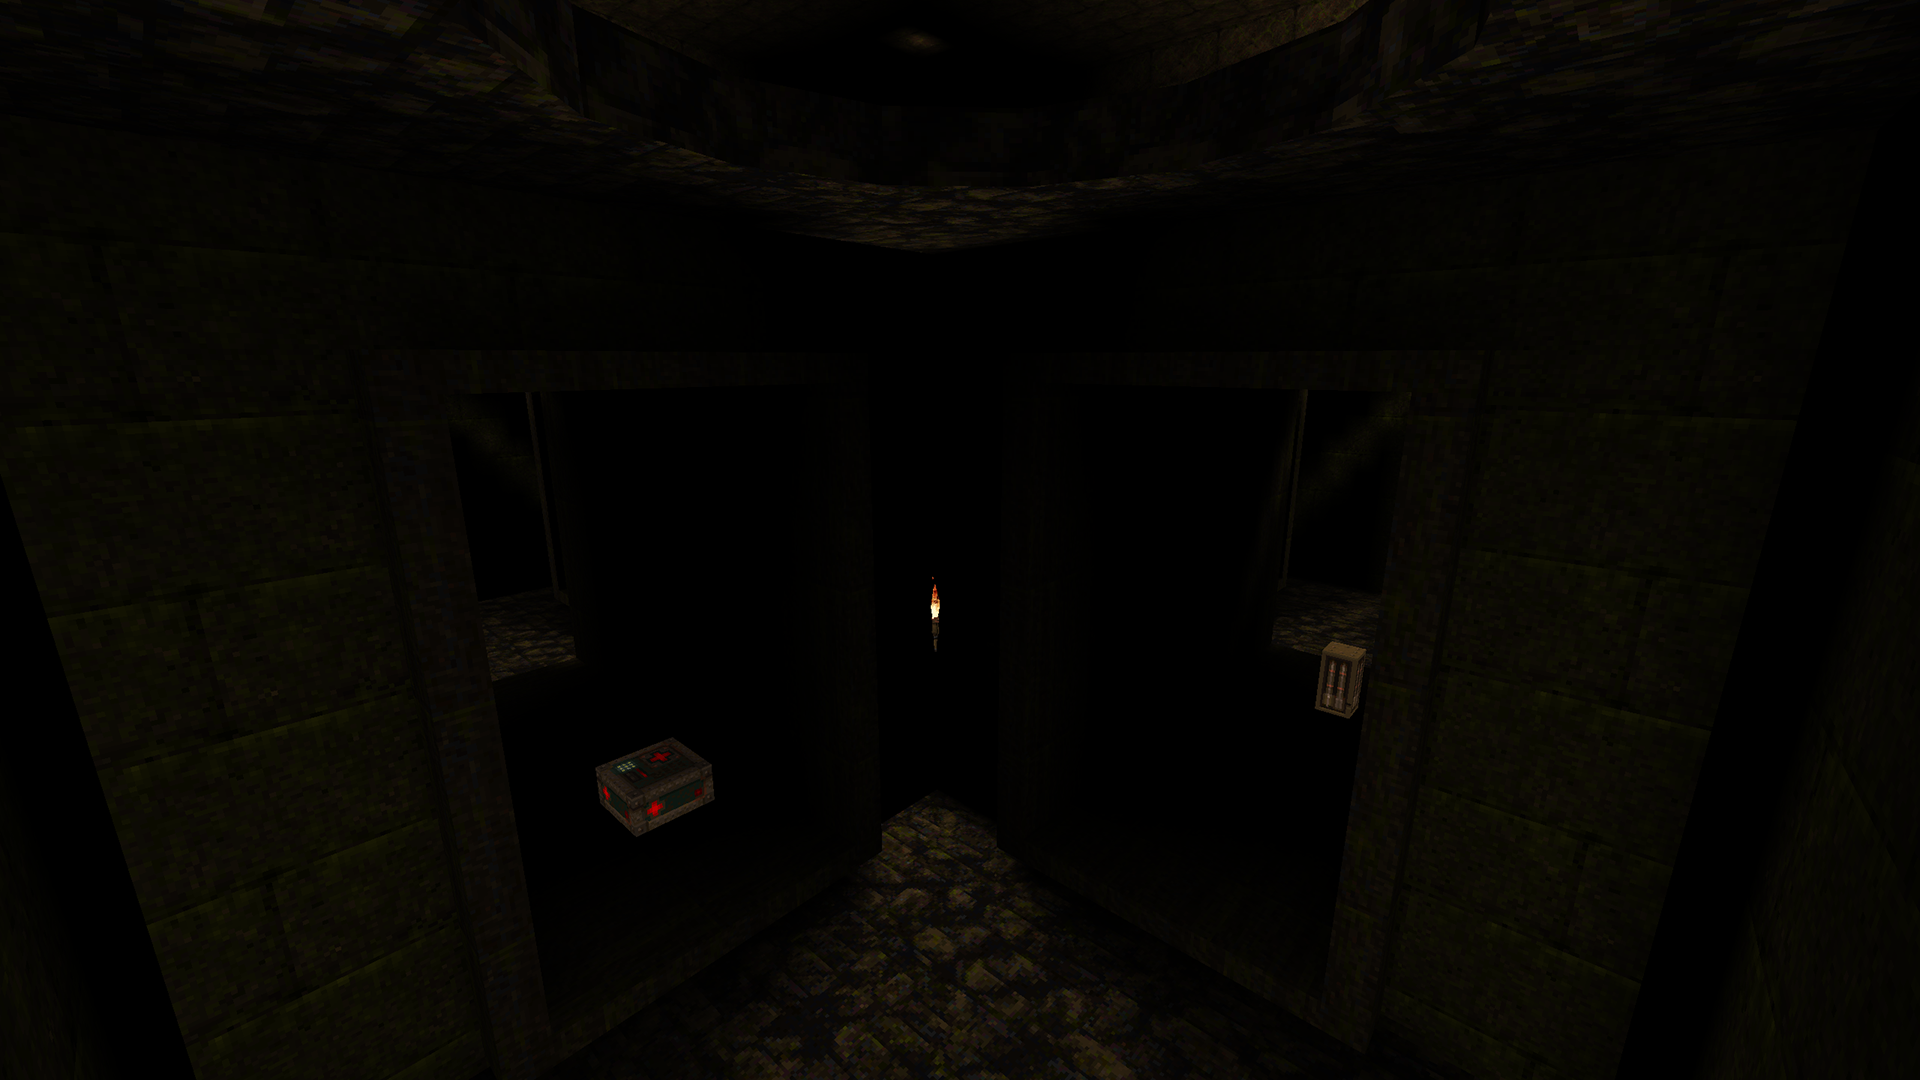 Entering The Dungeon... prepare to die!